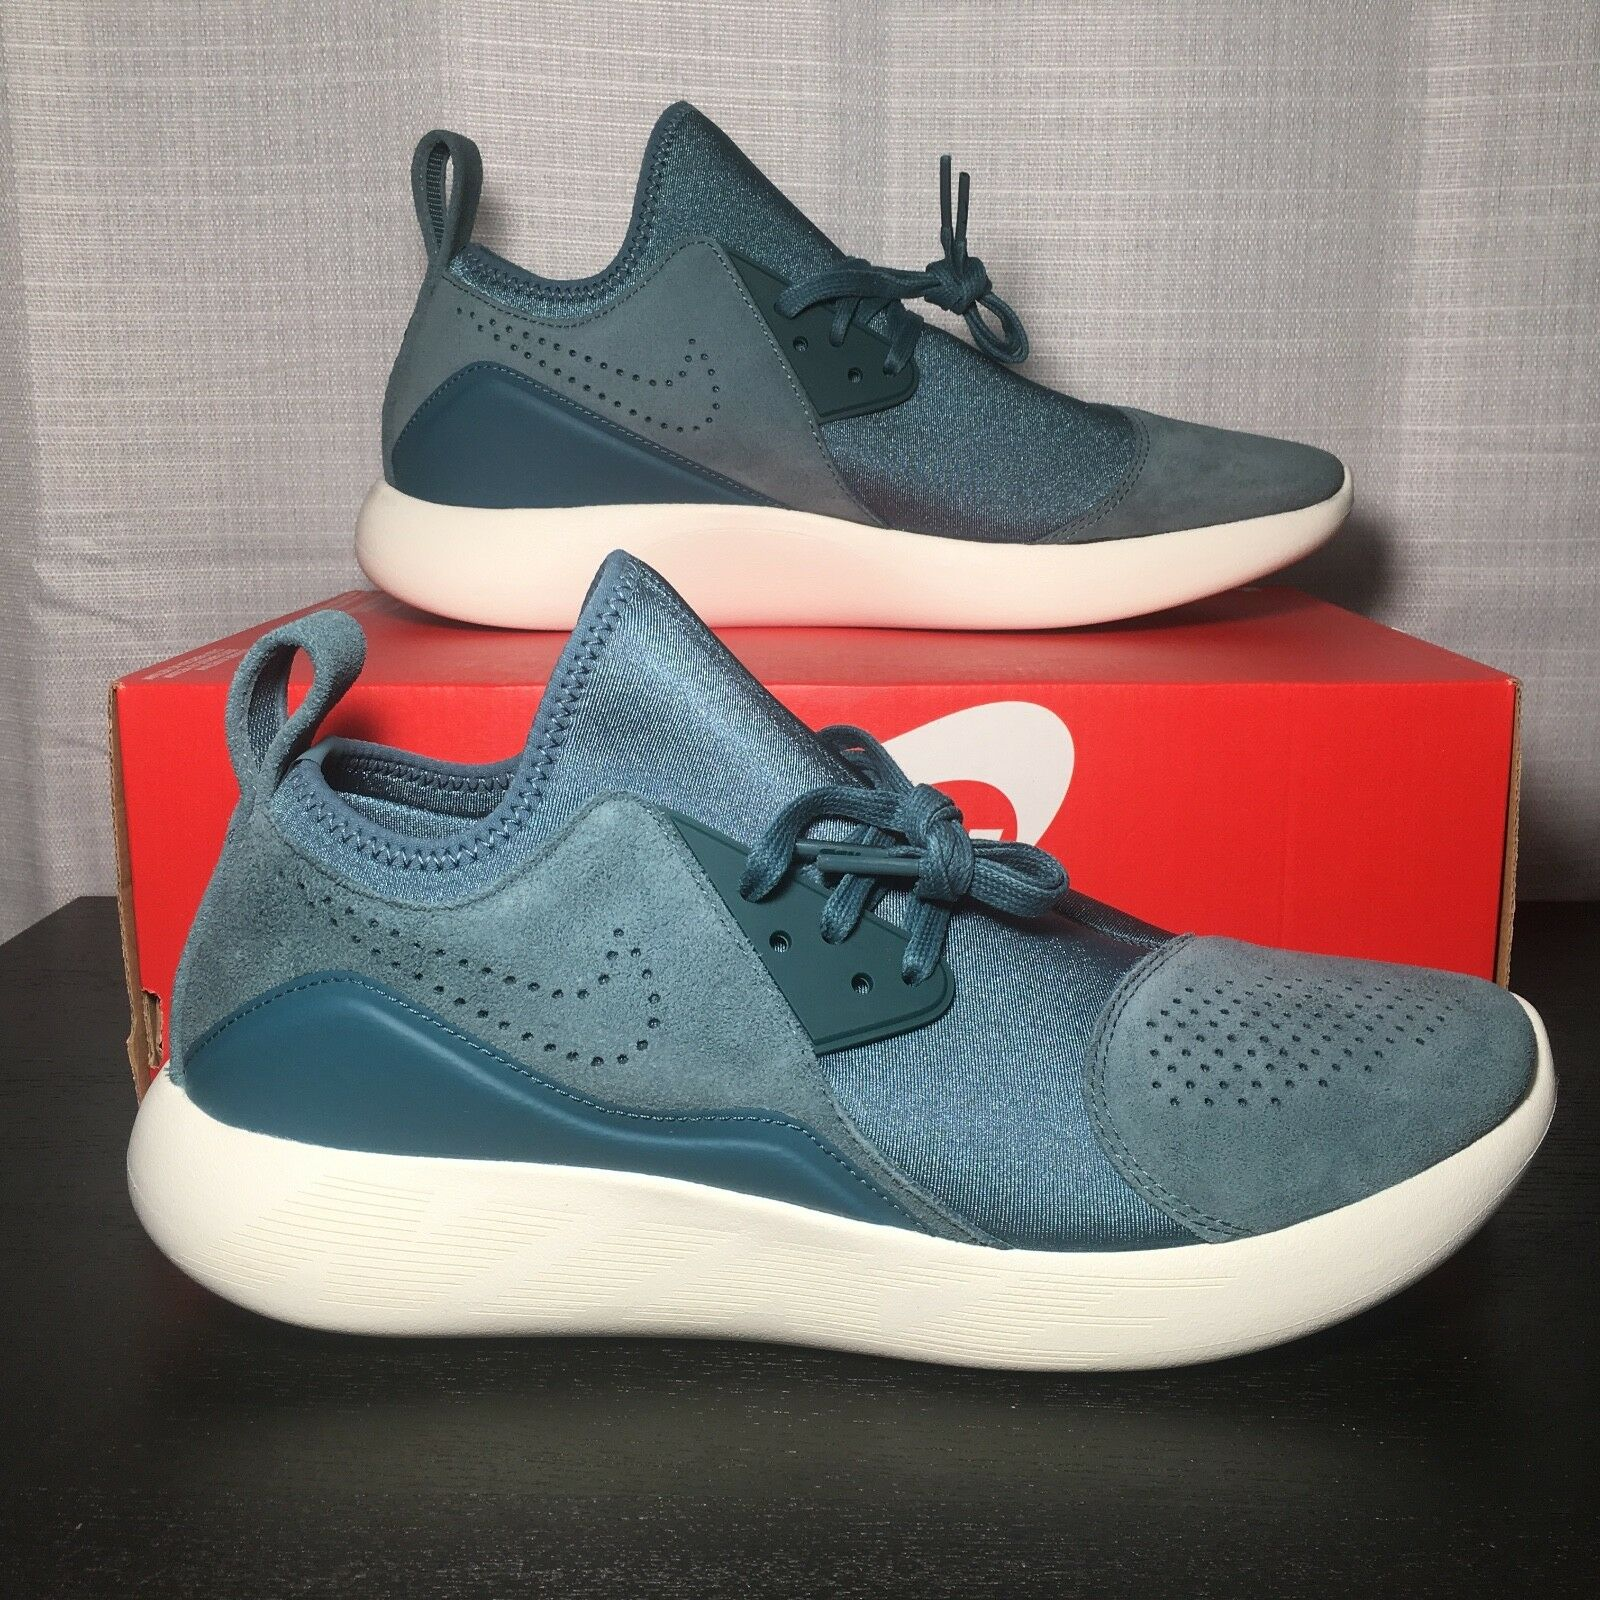 Nike LunarCharge Premium Shoes Iced Jade Teal 923281 331 Turqoise Mens US 11 Comfortable and good-looking Cheap women's shoes women's shoes